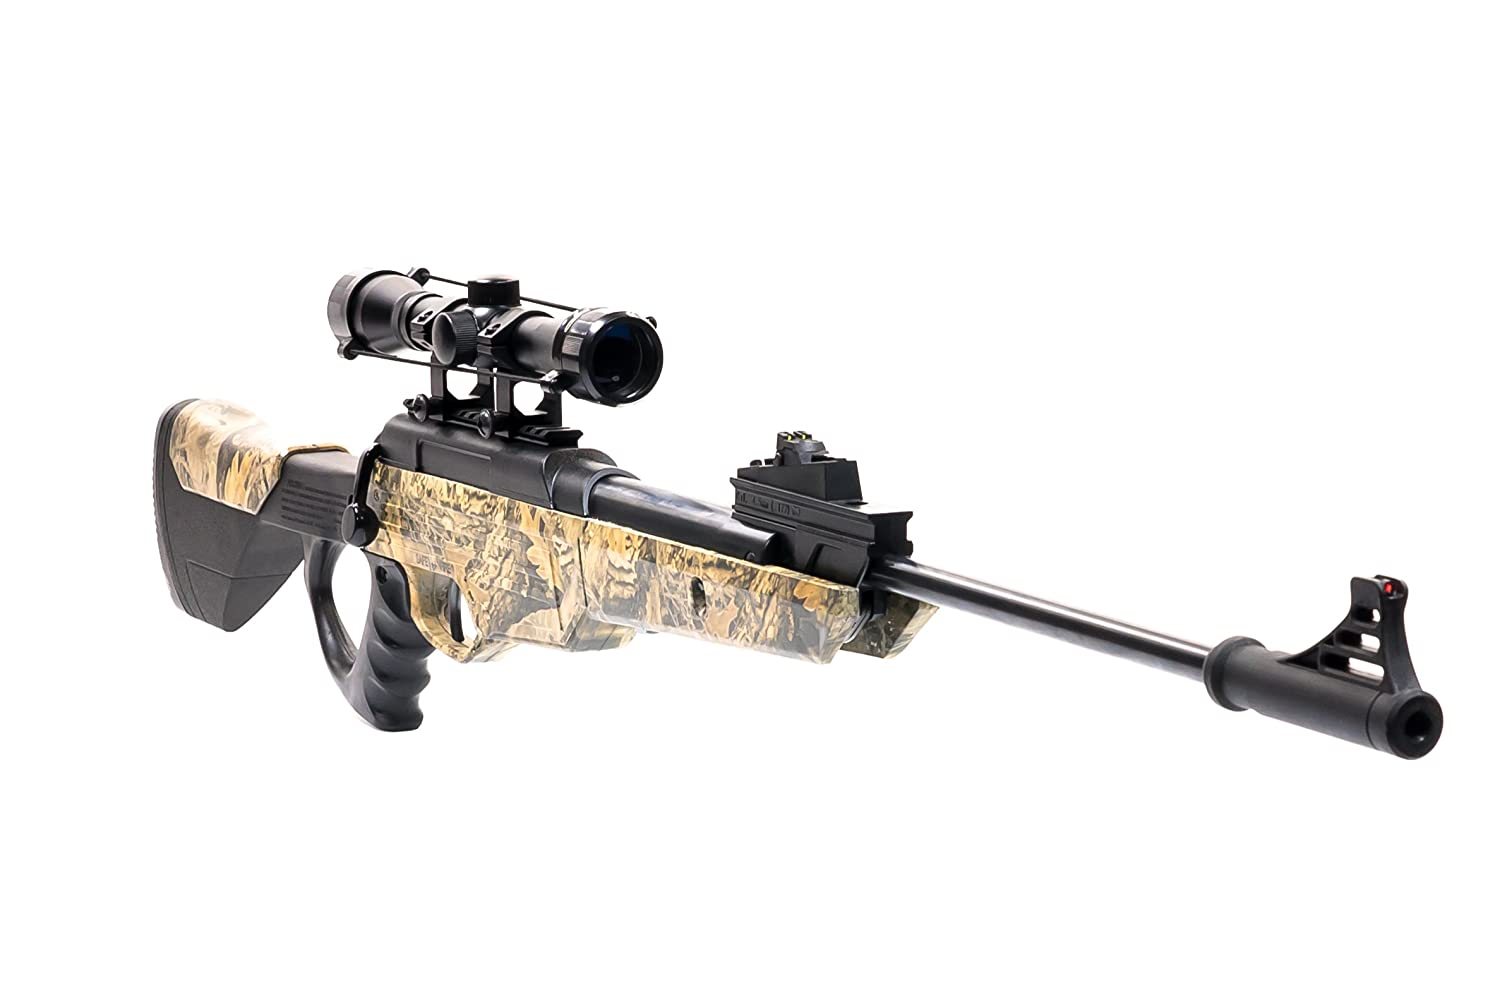 Amazon.com : Bear River TPR 1200 Hunting Air Rifle .177 Pellet Ammo Scope  Included : Sports U0026 Outdoors